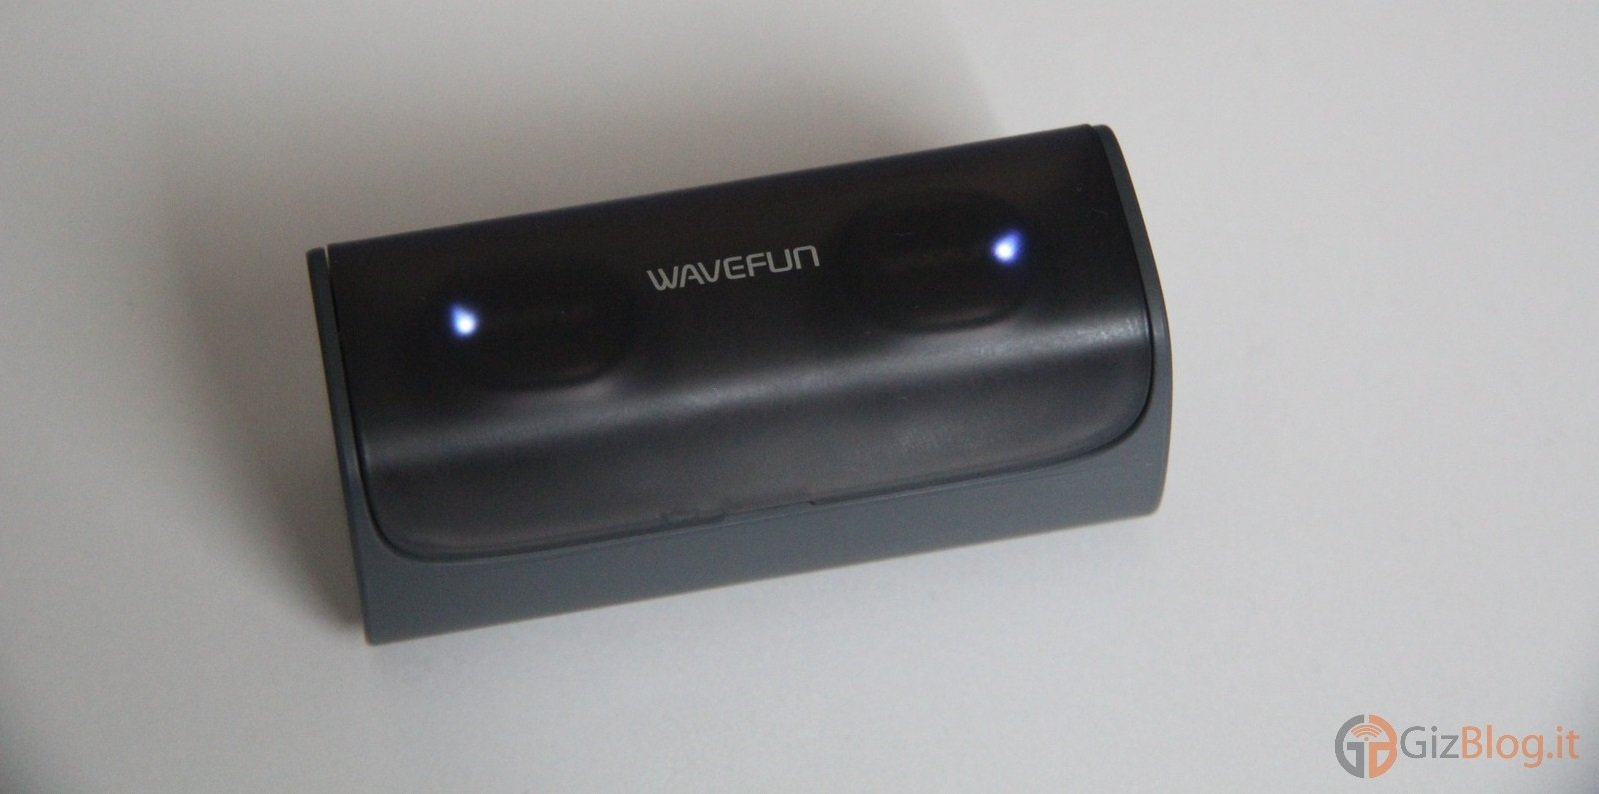 Wavefun X-Pods recensione auricolari true wireless